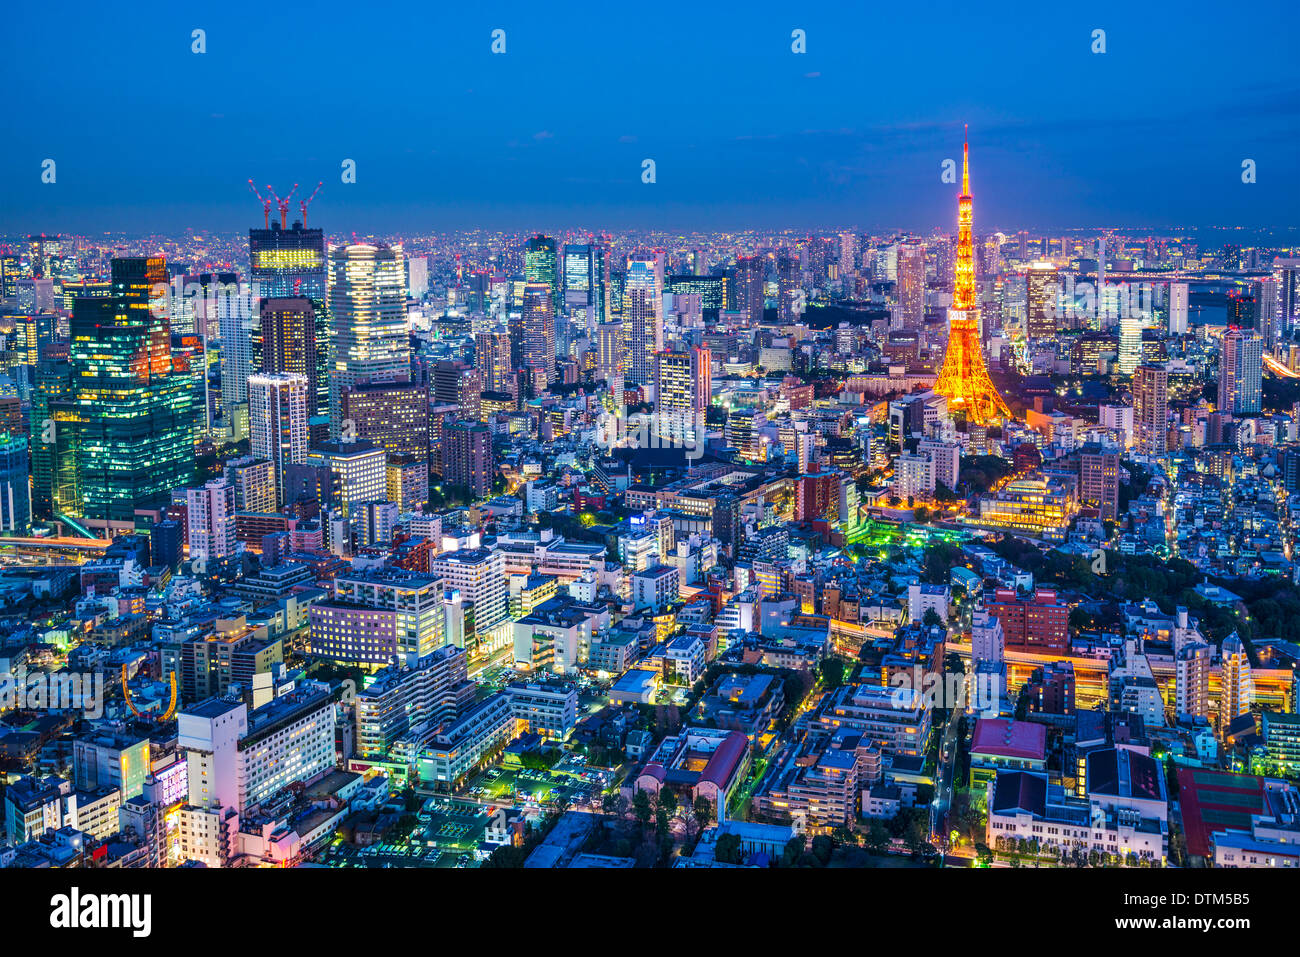 Tokyo, Japan cityscape aerial cityscape view at dusk. - Stock Image